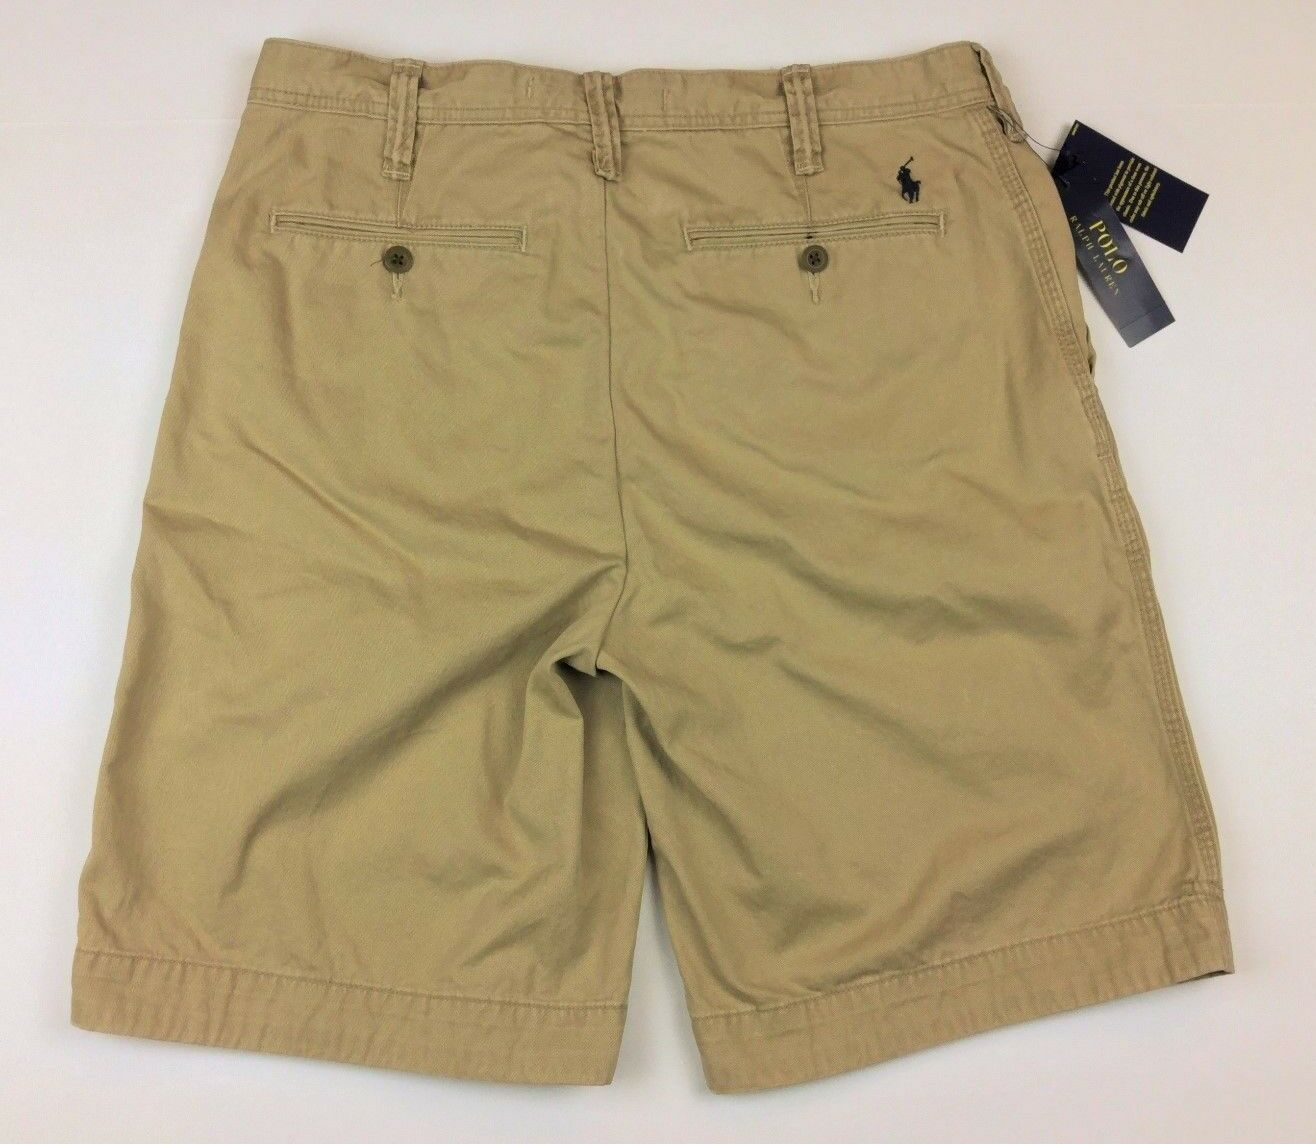 746483835e54c0 Ralph Lauren Men Relaxed Fit Cotton Brown 31 Polo Shorts ozilzx21902-Shorts